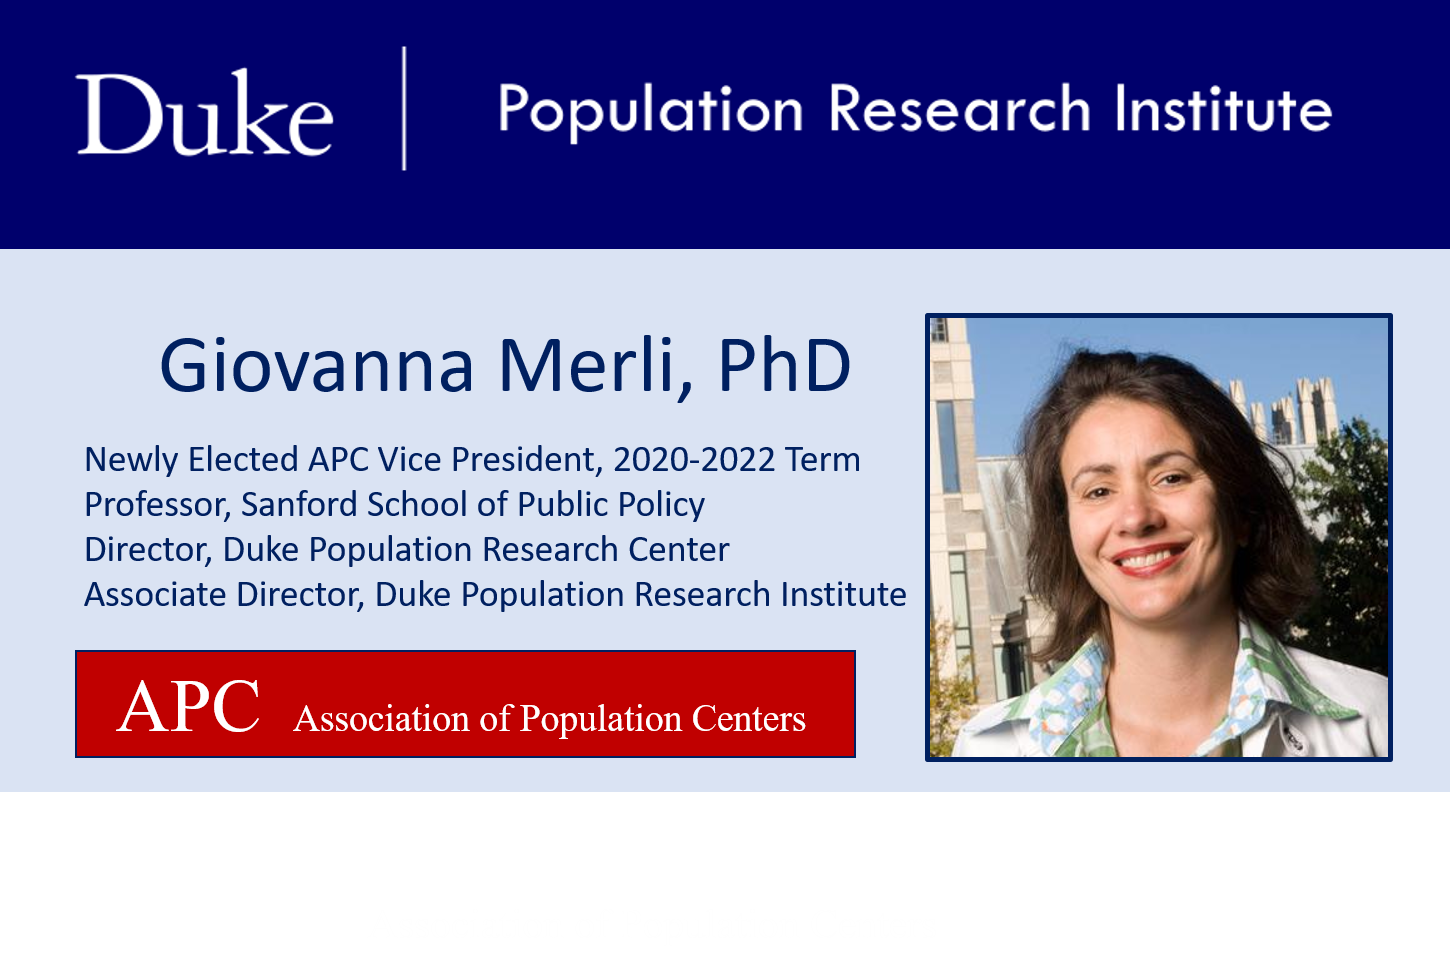 DUPRI's Giovanna Merli Elected Vice President for the Association of Population Centers